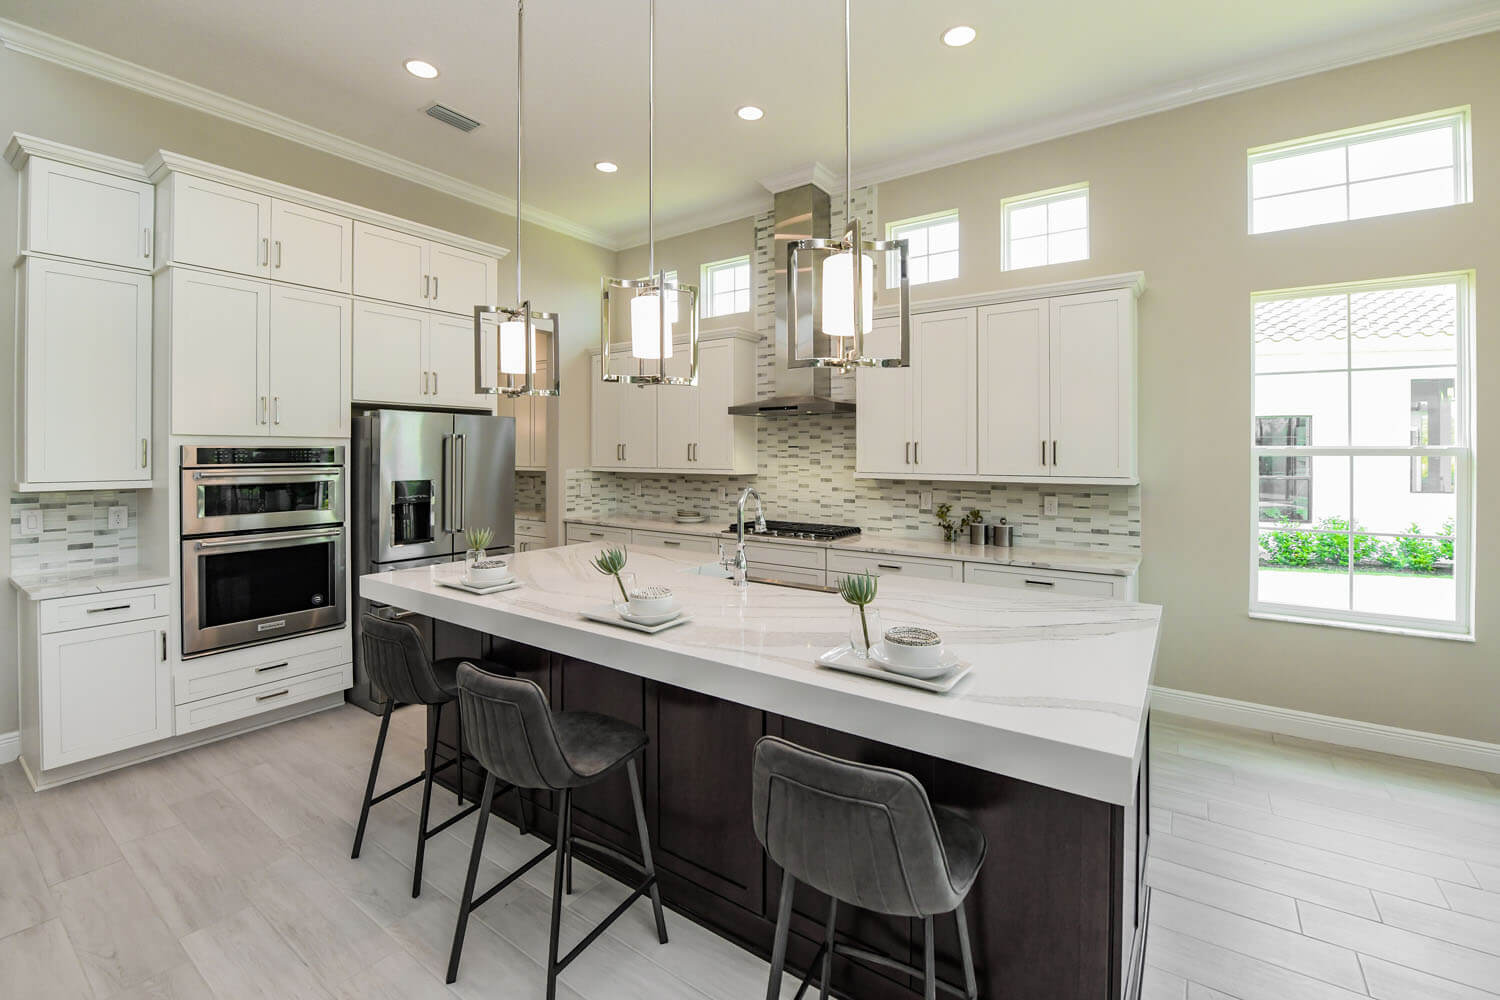 New Tampa Single Family Home Quick Possession Palazzo in Lakewood Ranch, located at 7508 Windy Hill Cove, Lakewood Ranch, FL 34202 Built By Cardel Homes Tampa